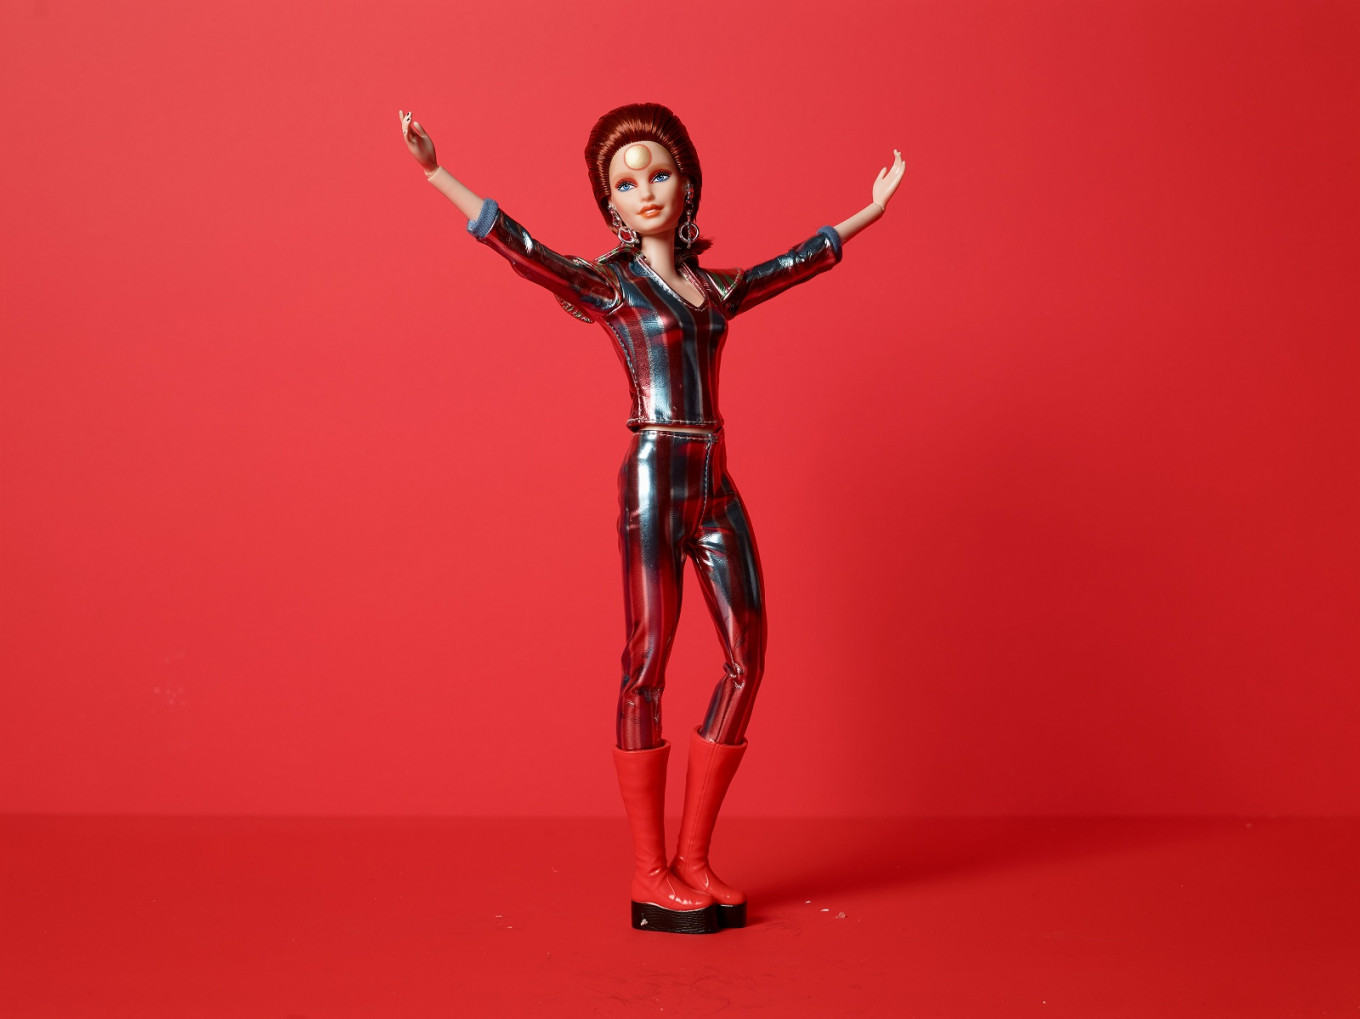 Mattel unveils David Bowie Barbie doll